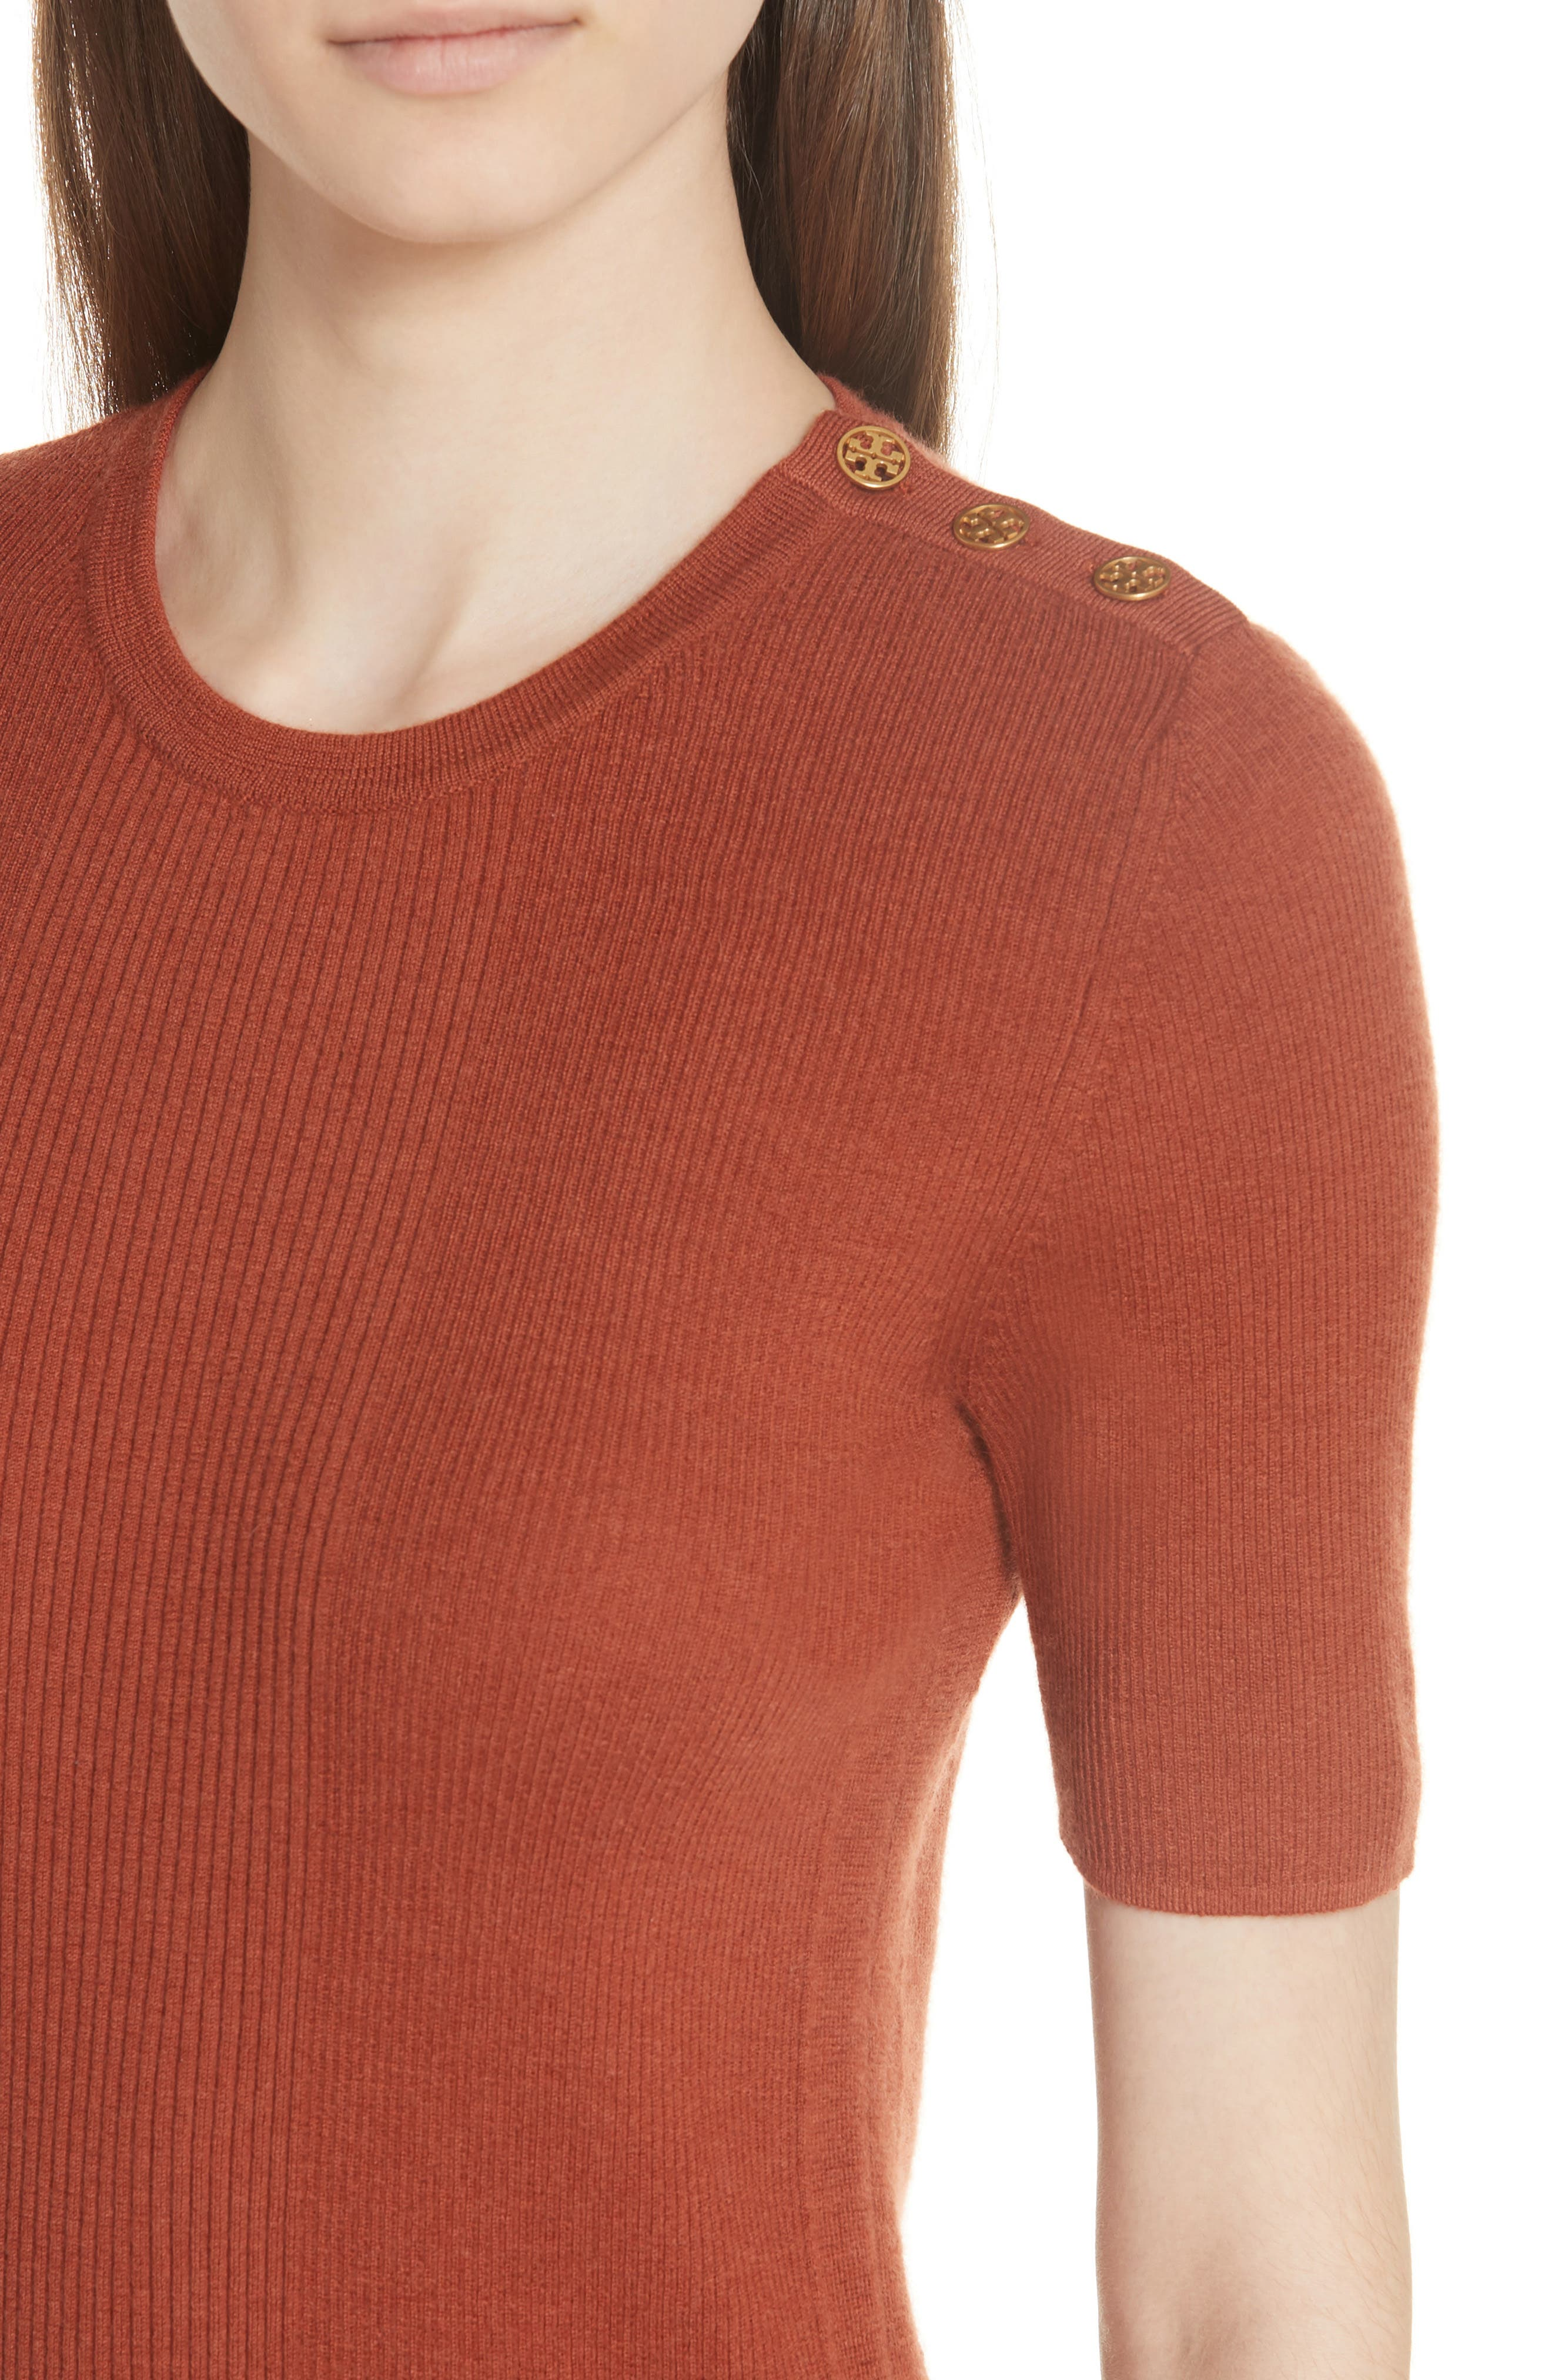 Taylor Ribbed Cashmere Sweater,                             Alternate thumbnail 4, color,                             217